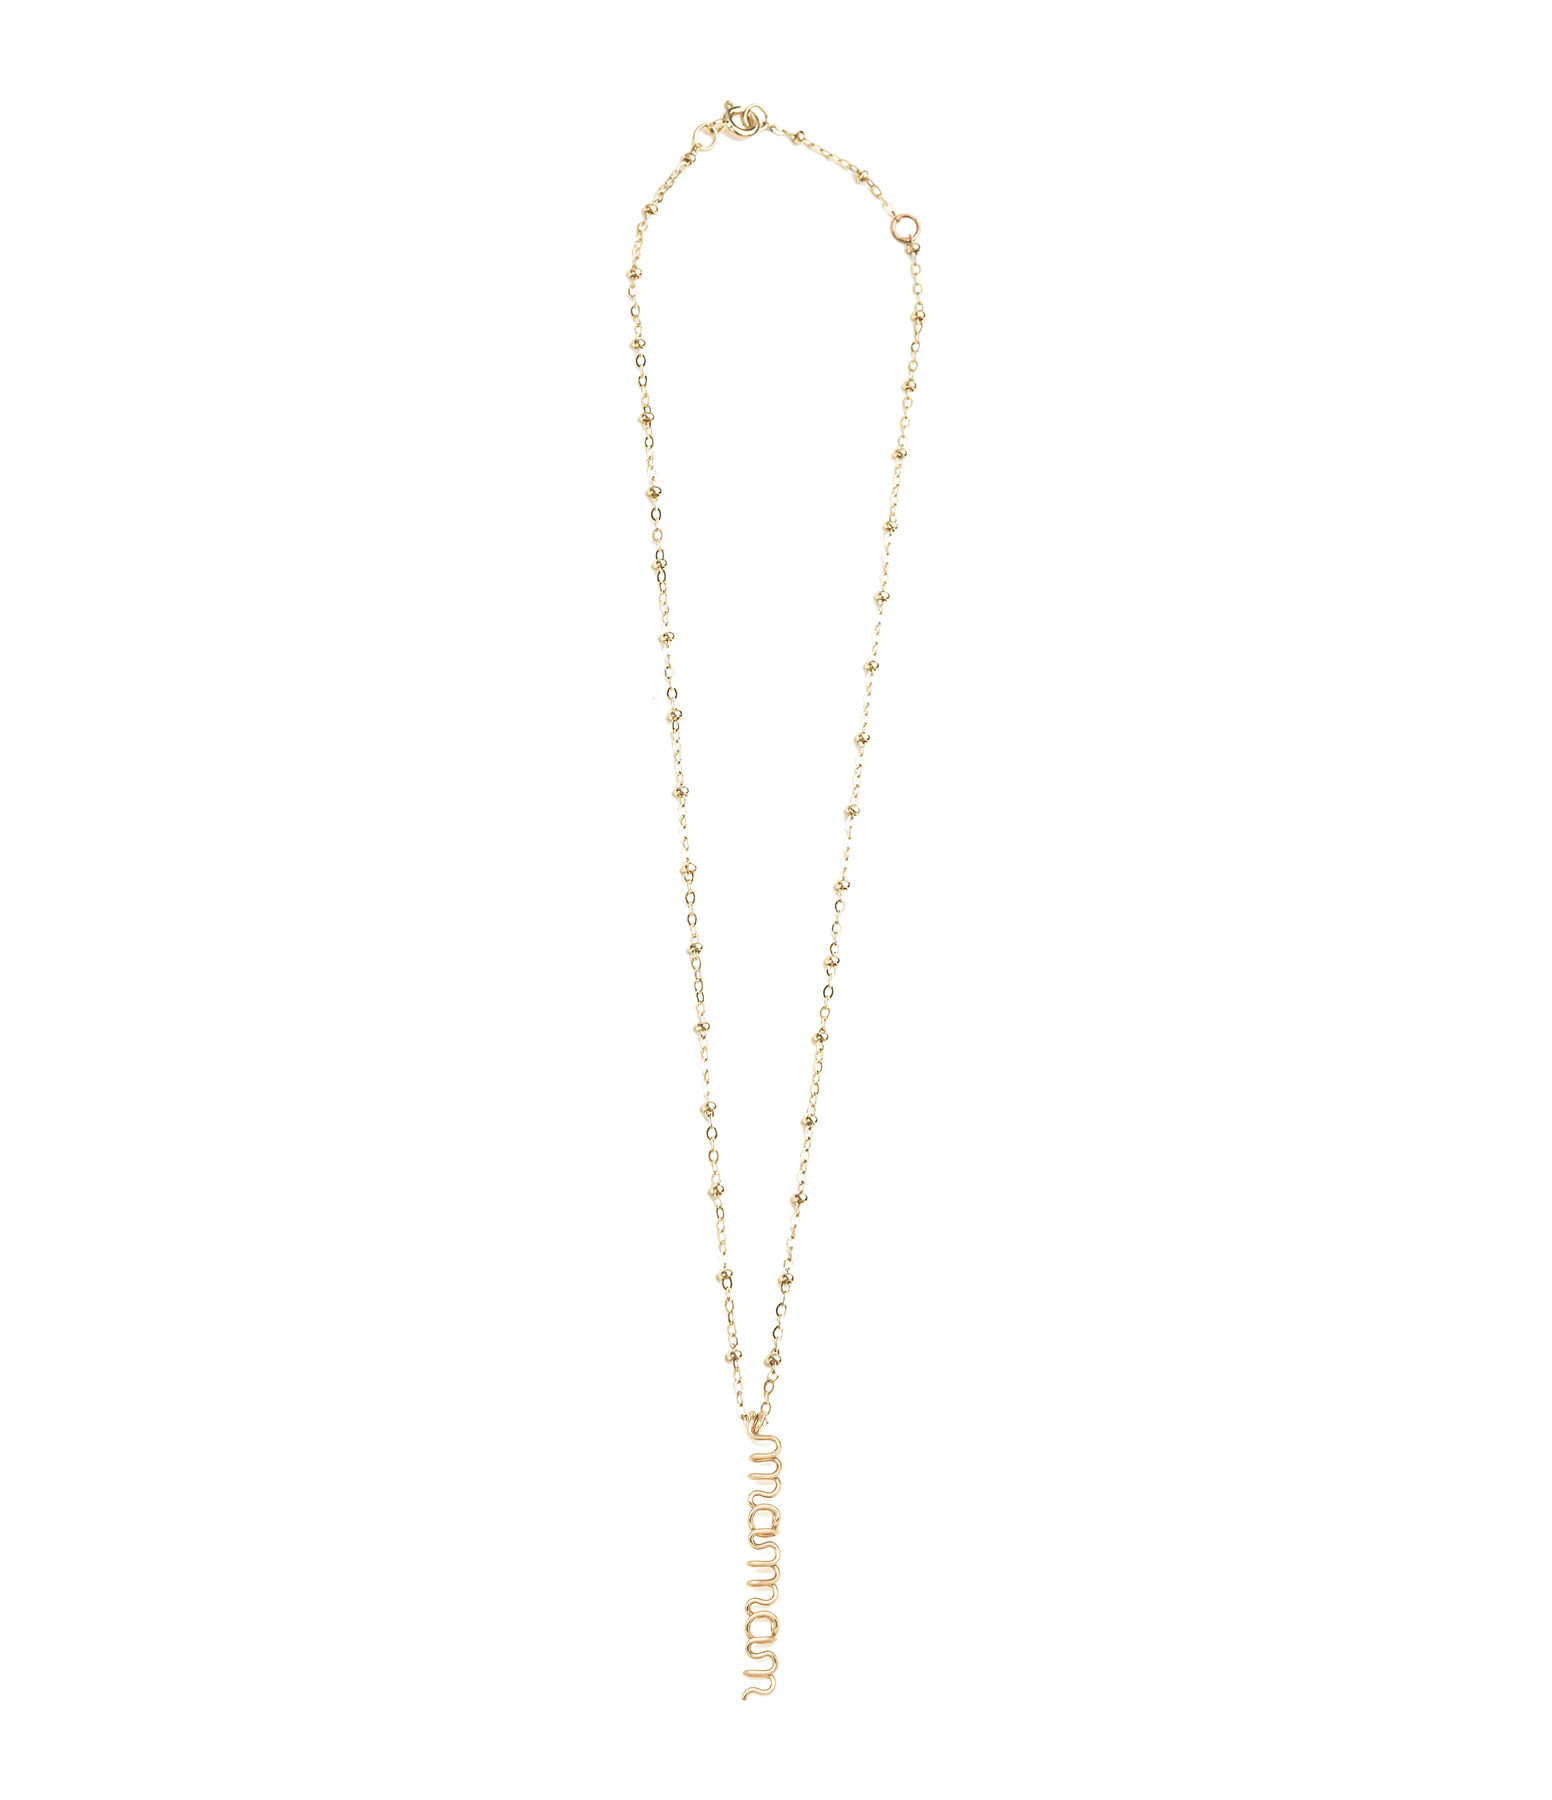 ATELIER PAULIN - Collier Pendentif Original Maman Gold Filled 14k